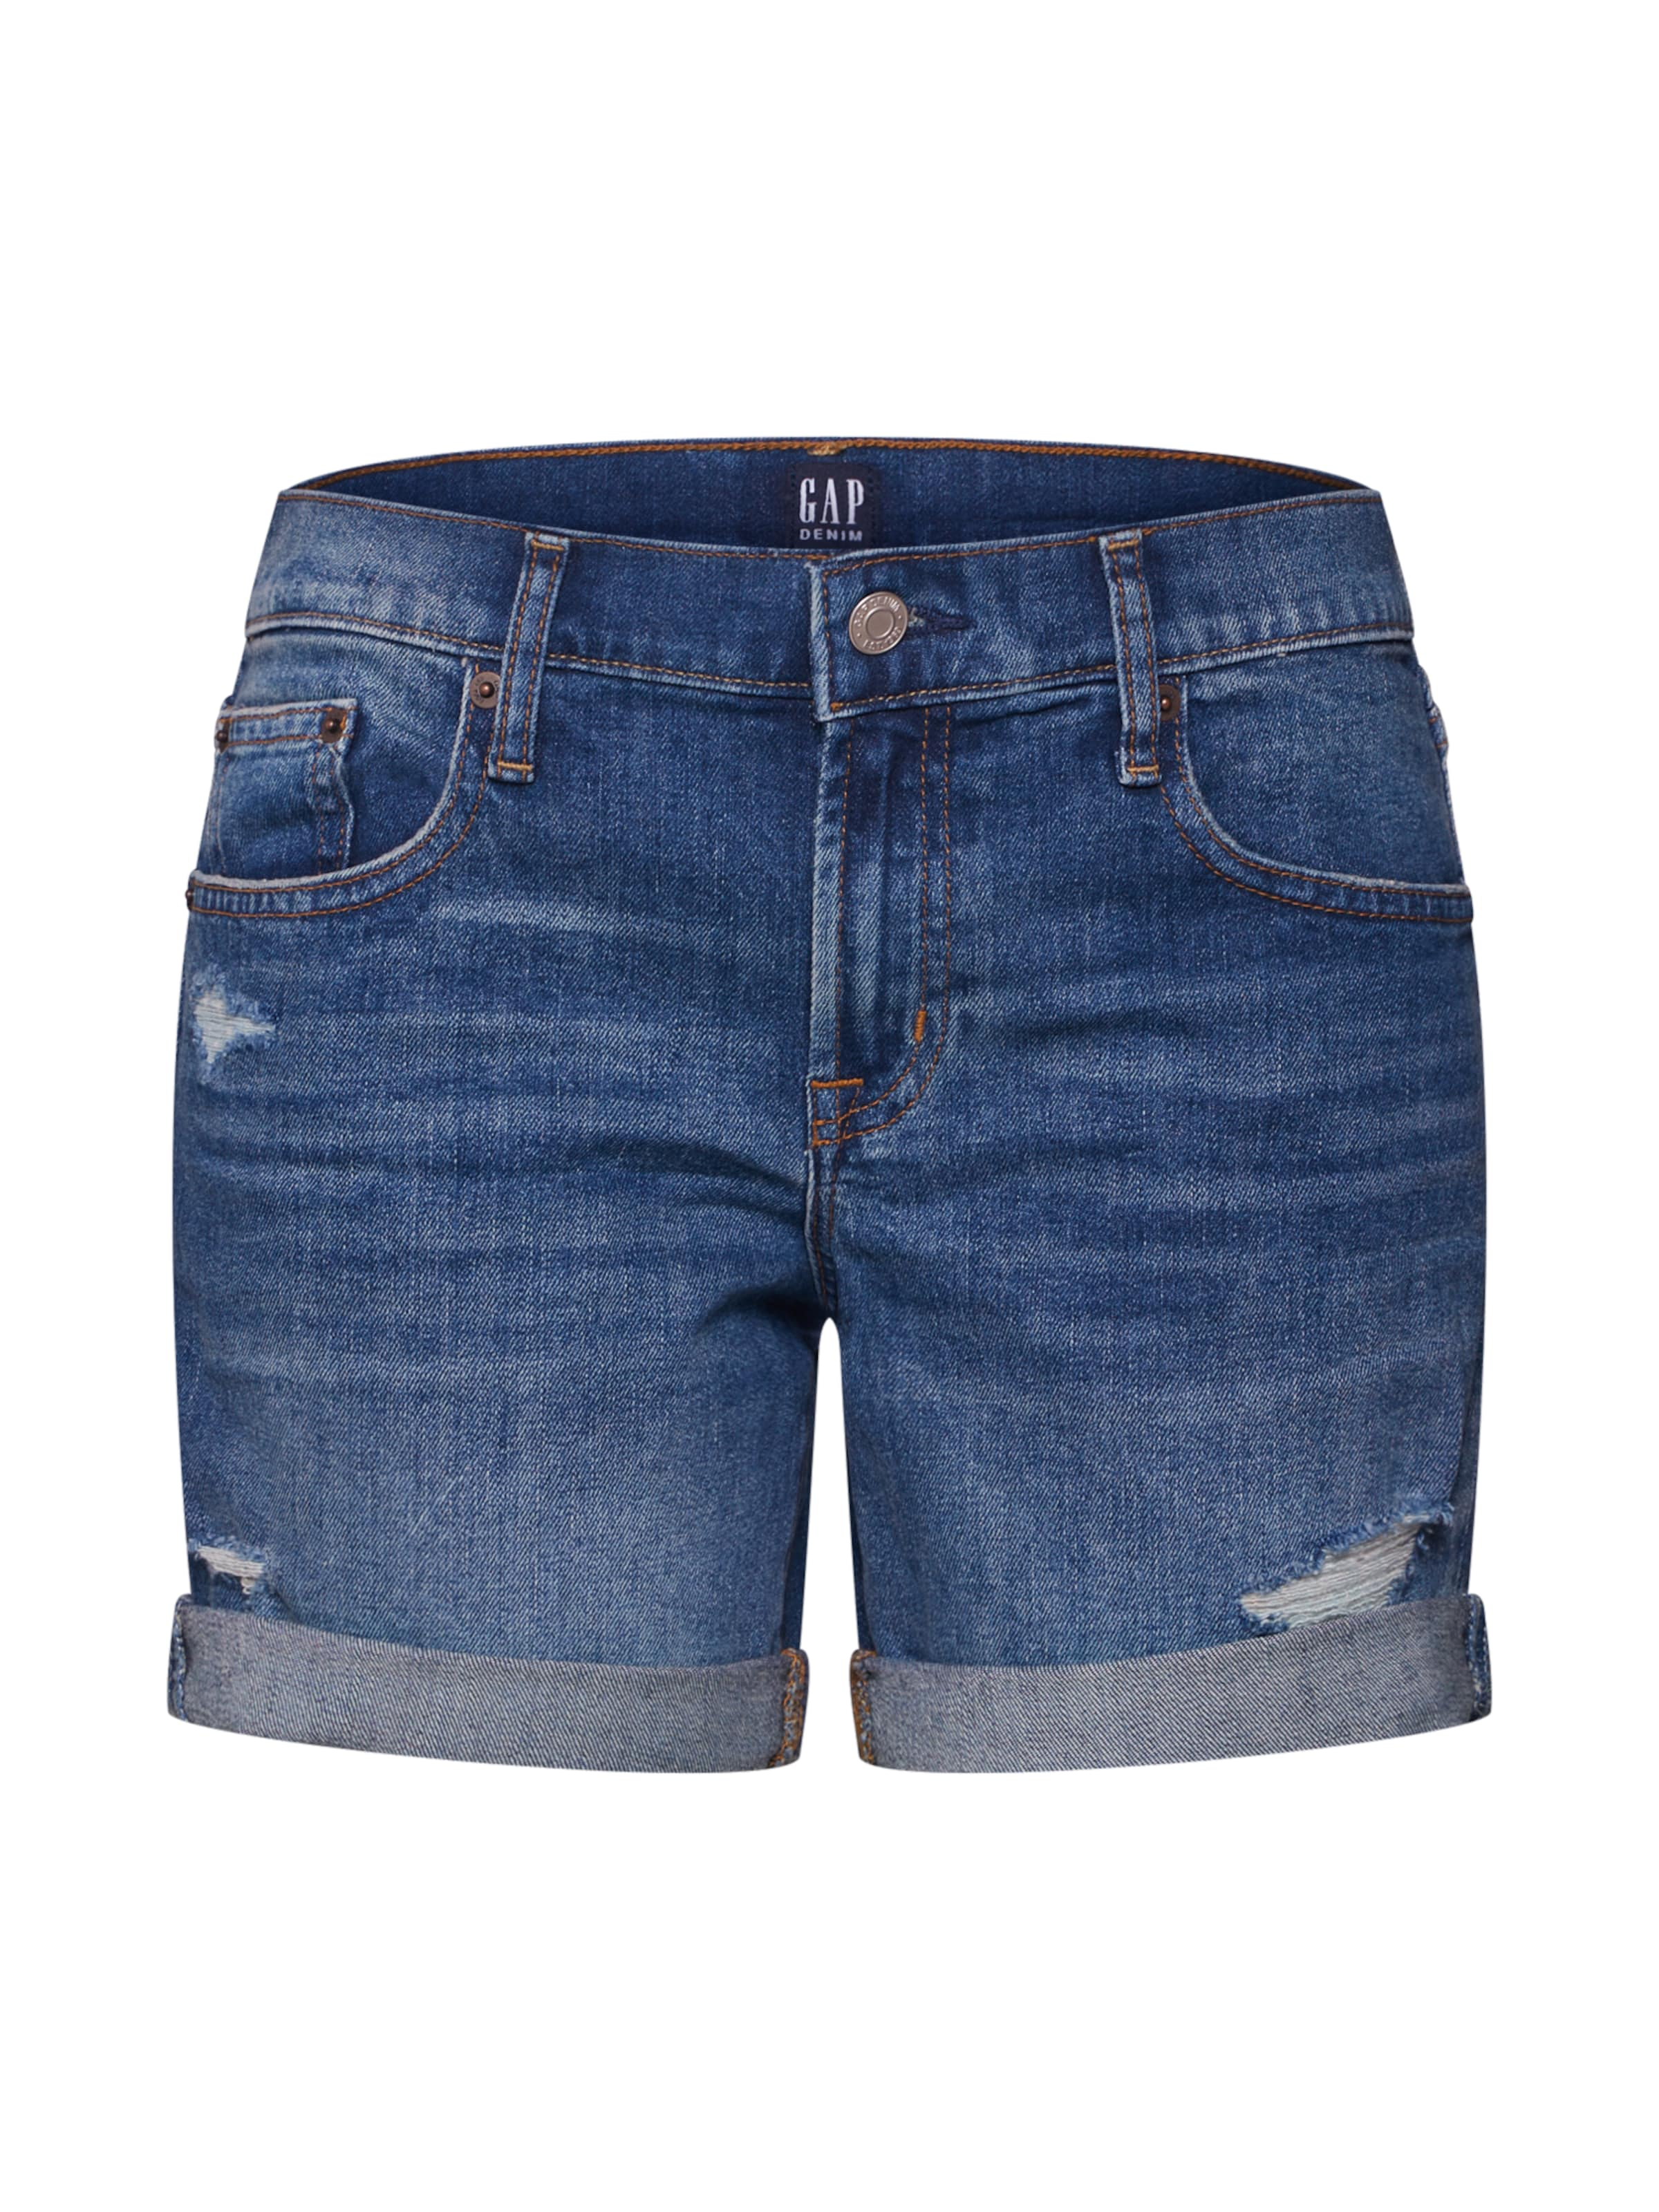 Gap Blue Denim Jeans In 'sterling' redCxoB